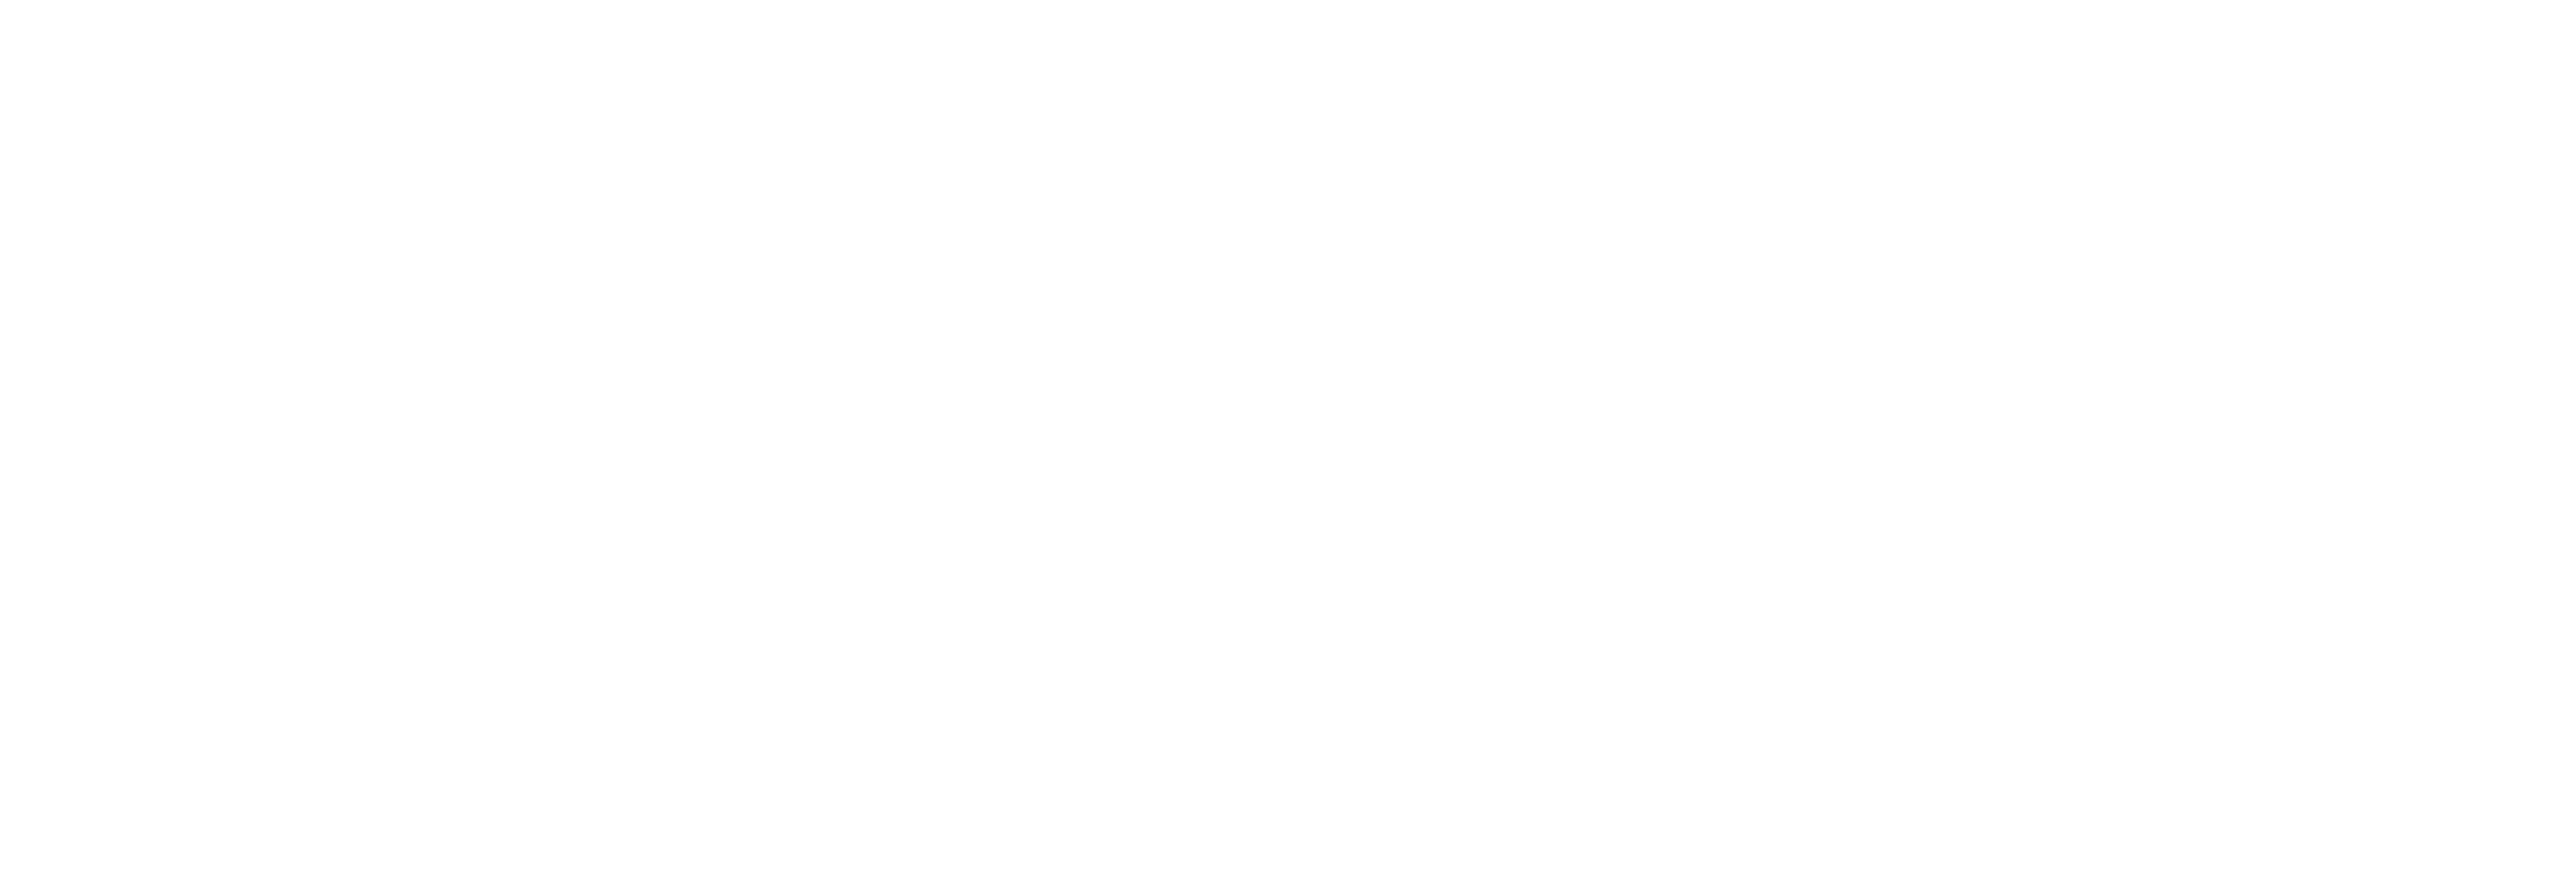 AL-SUHAILY Official Website | السهيلي